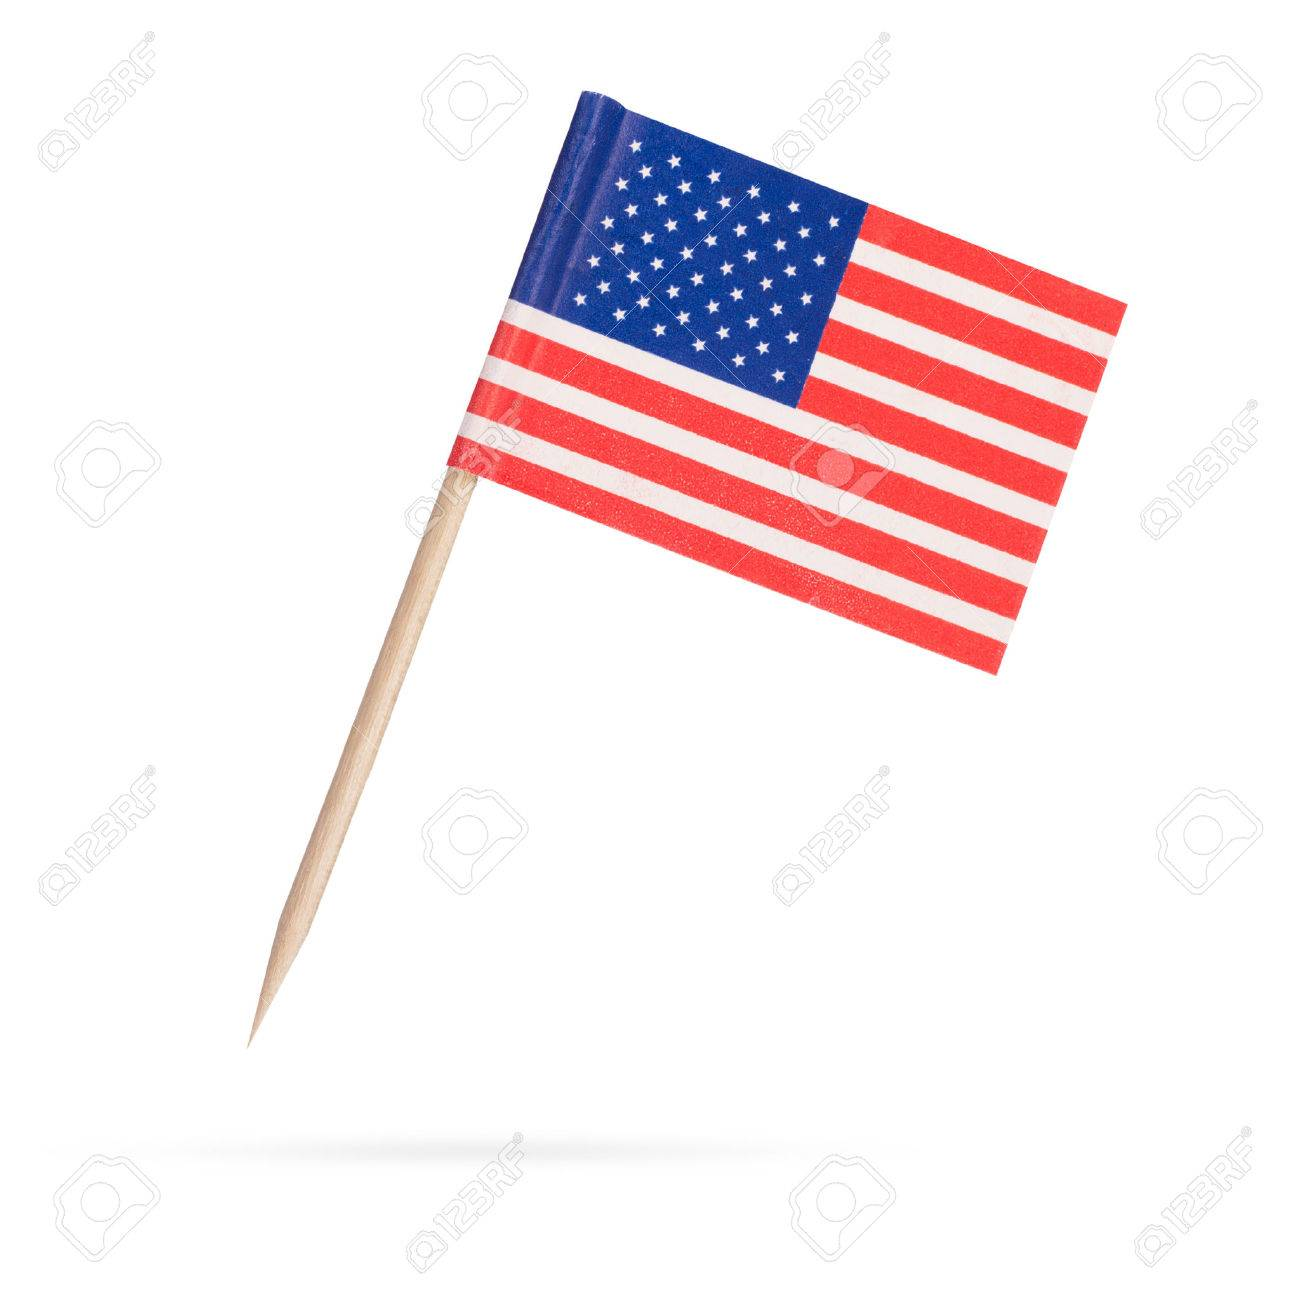 american flag wood stock photos u0026 pictures royalty free american